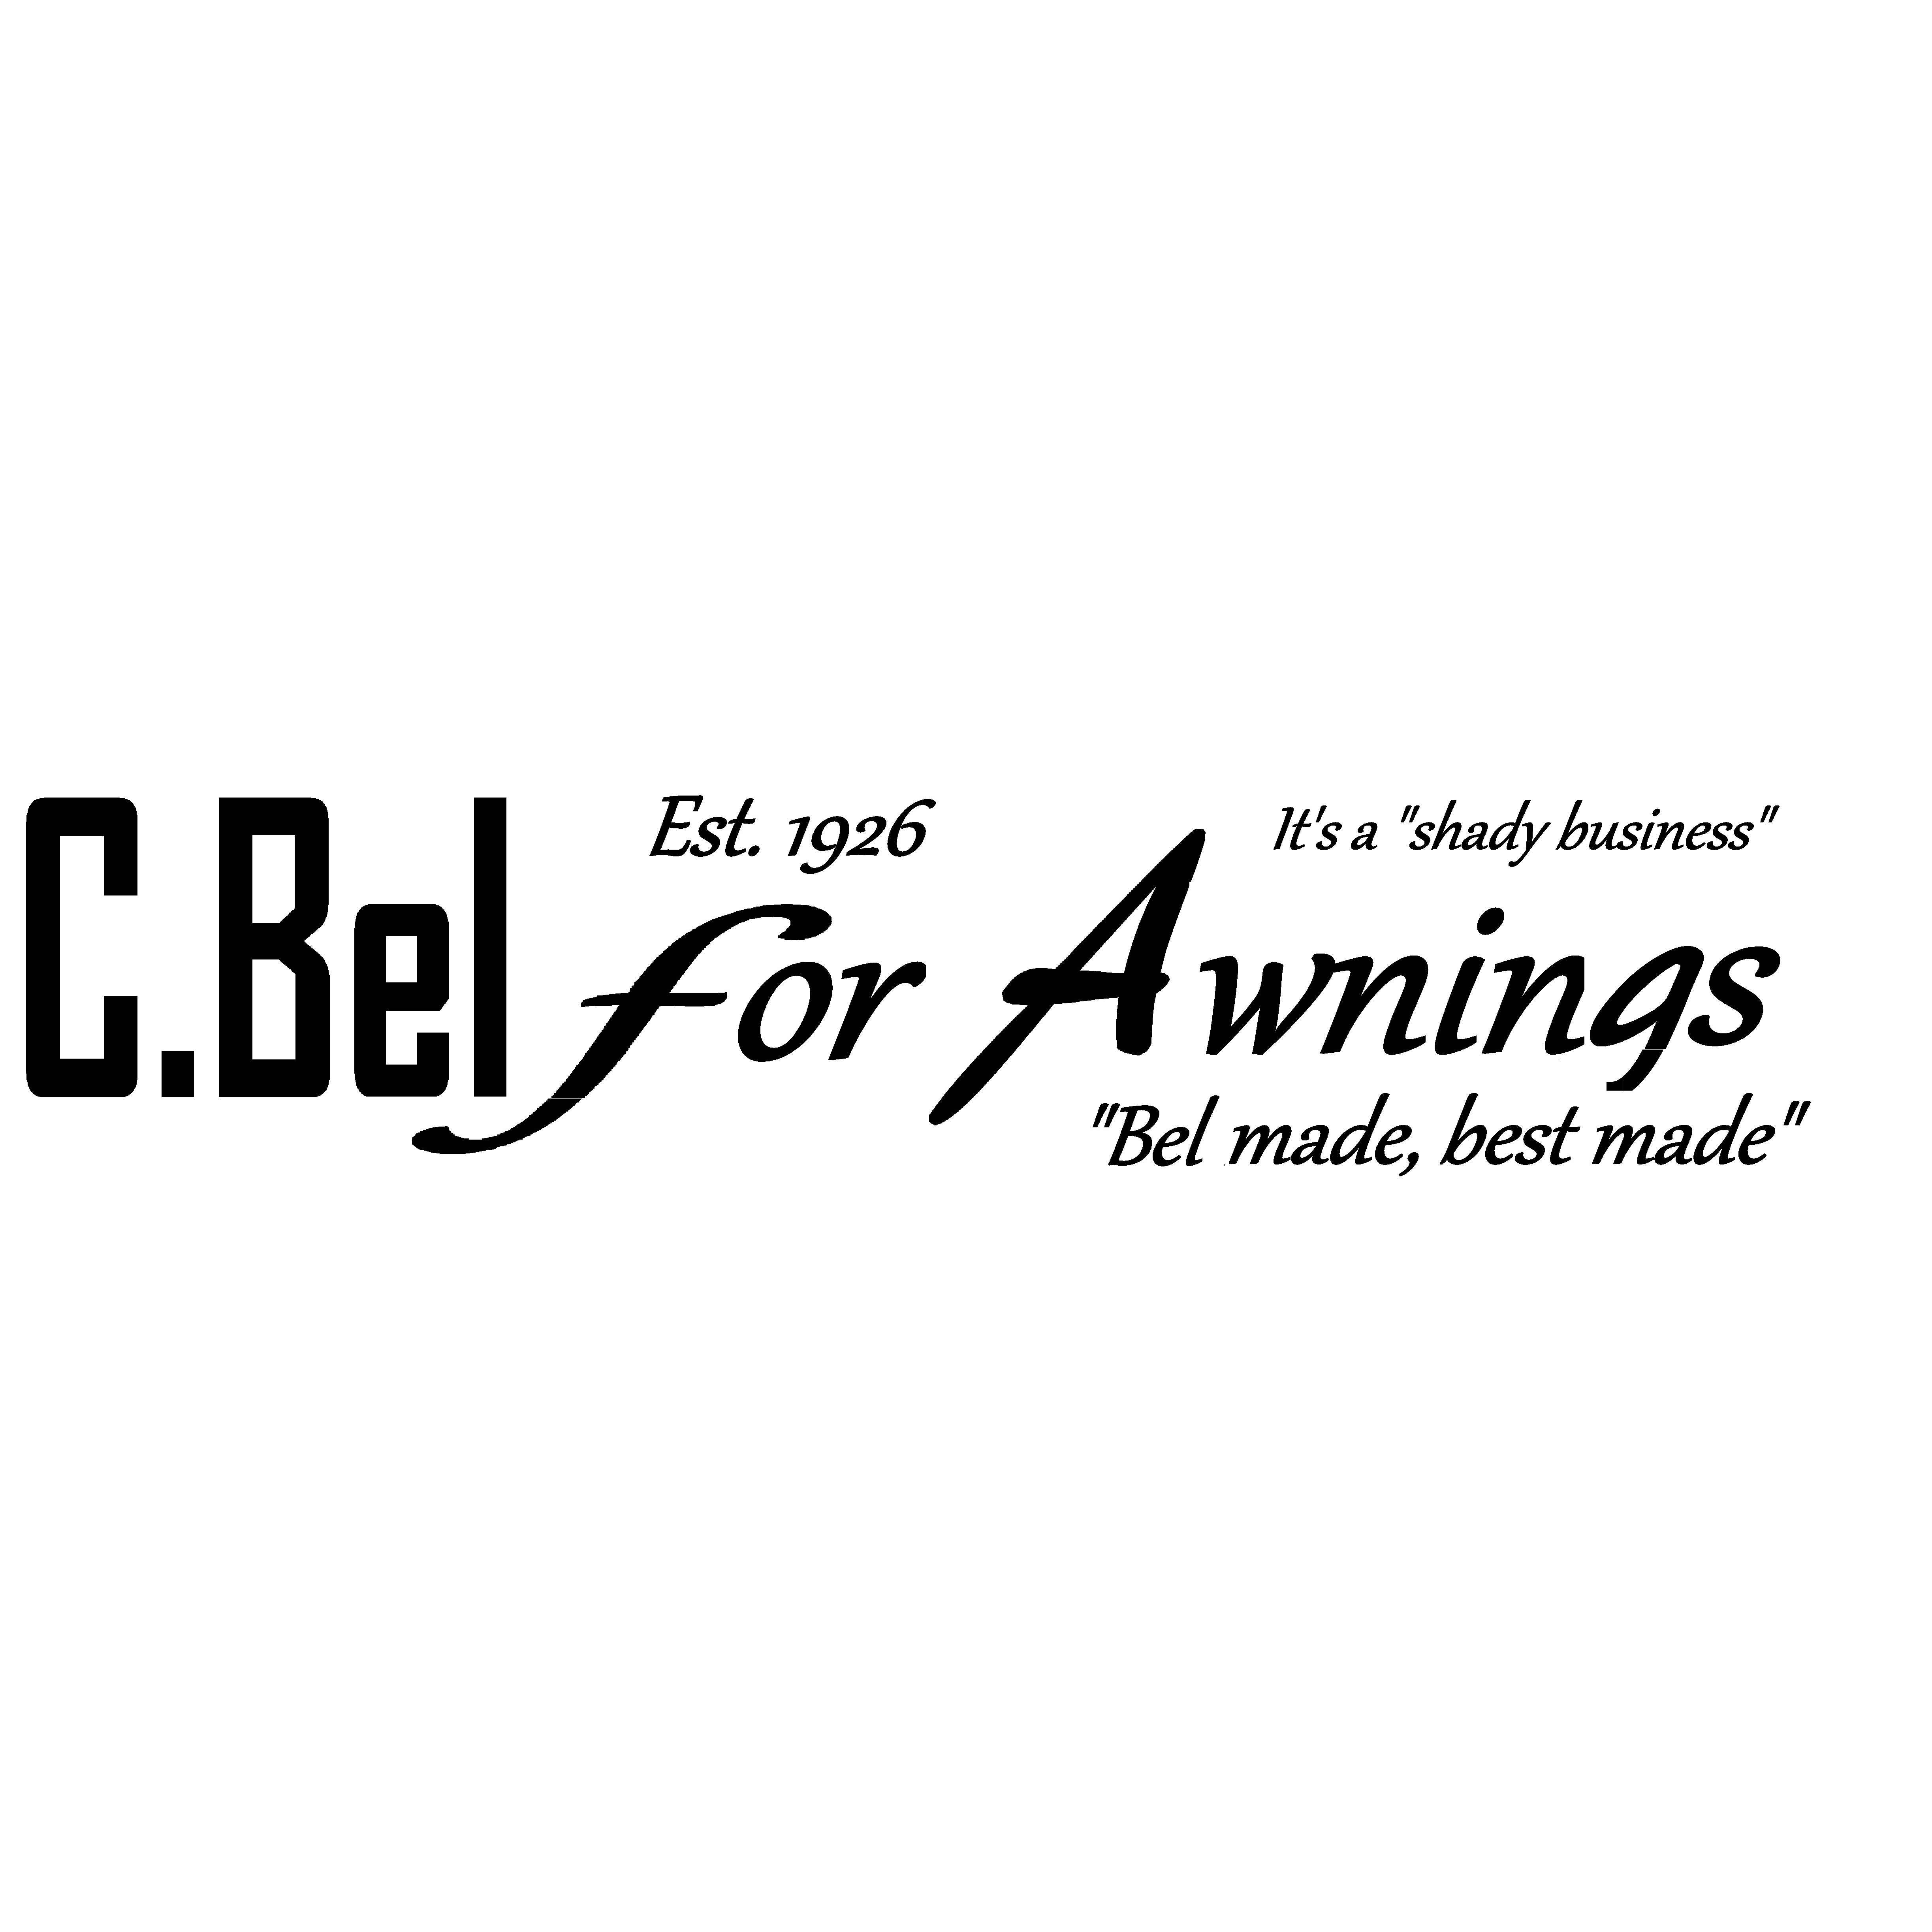 C. Bel for Awnings, Inc. - New Orleans, LA - Awnings & Canopies